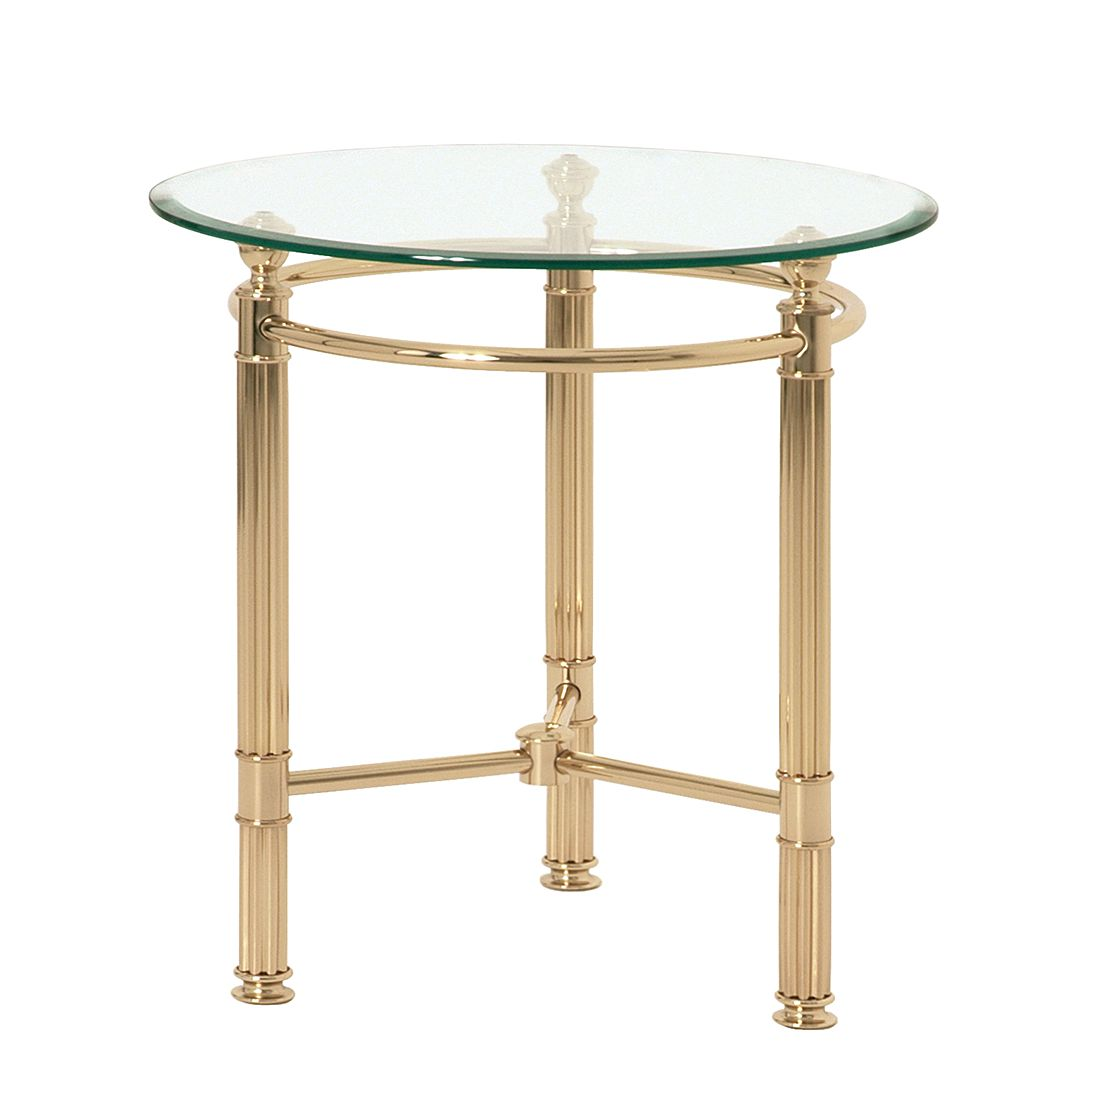 Table d'appoint Aube